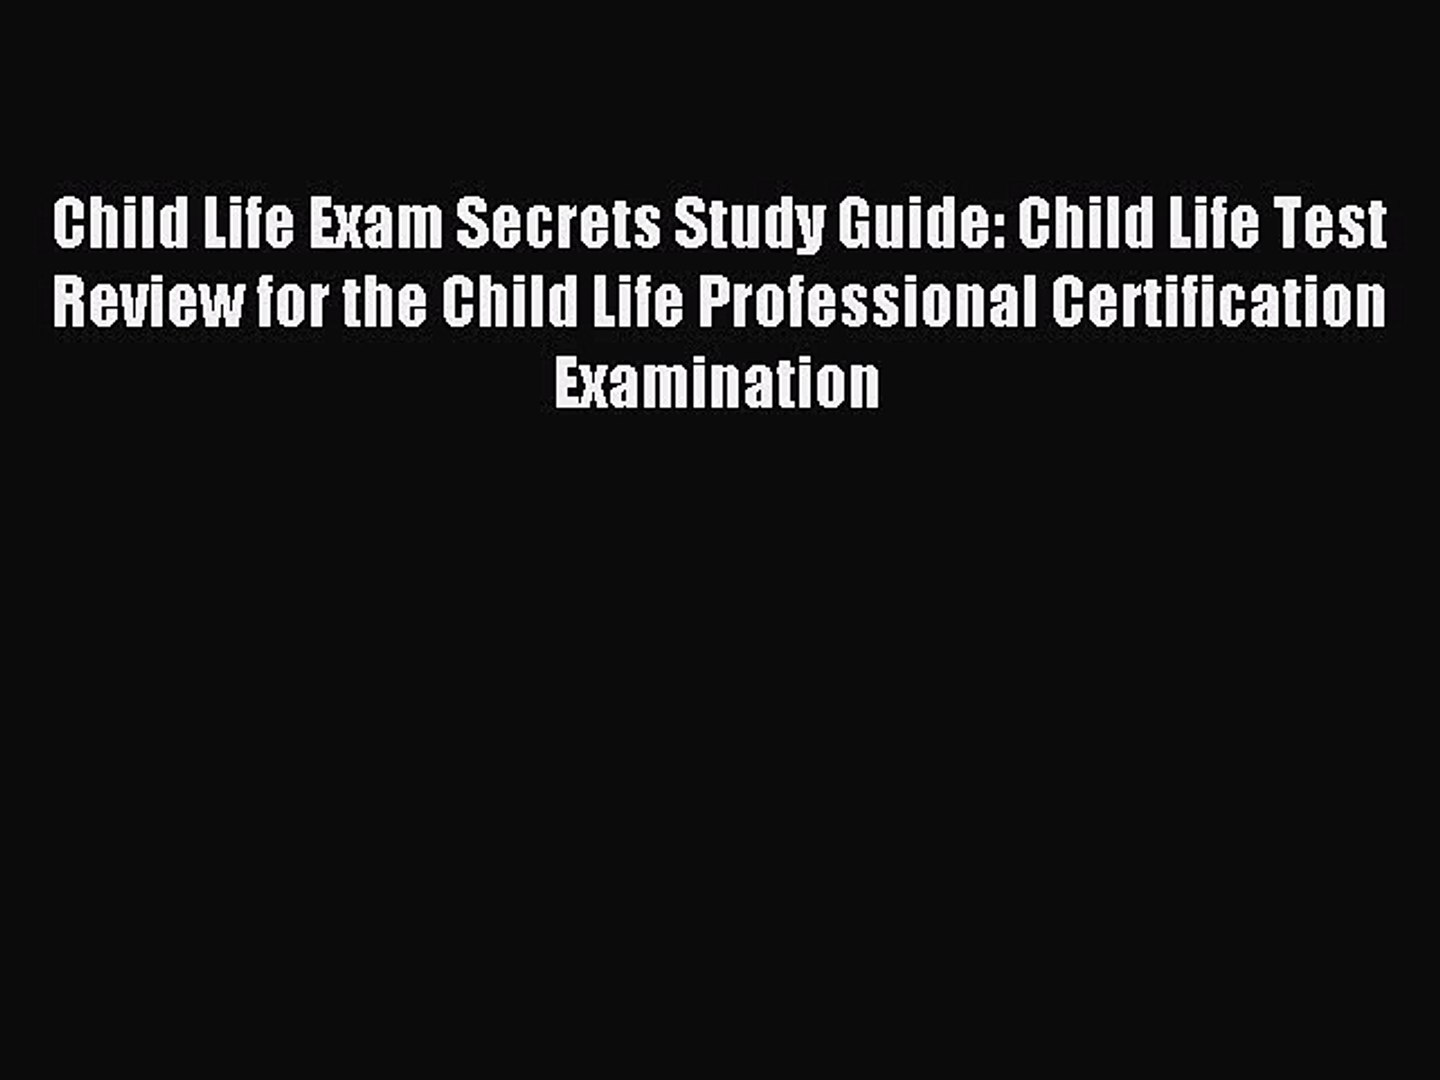 Read Child Life Exam Secrets Study Guide: Child Life Test Review for the Child Life Professional